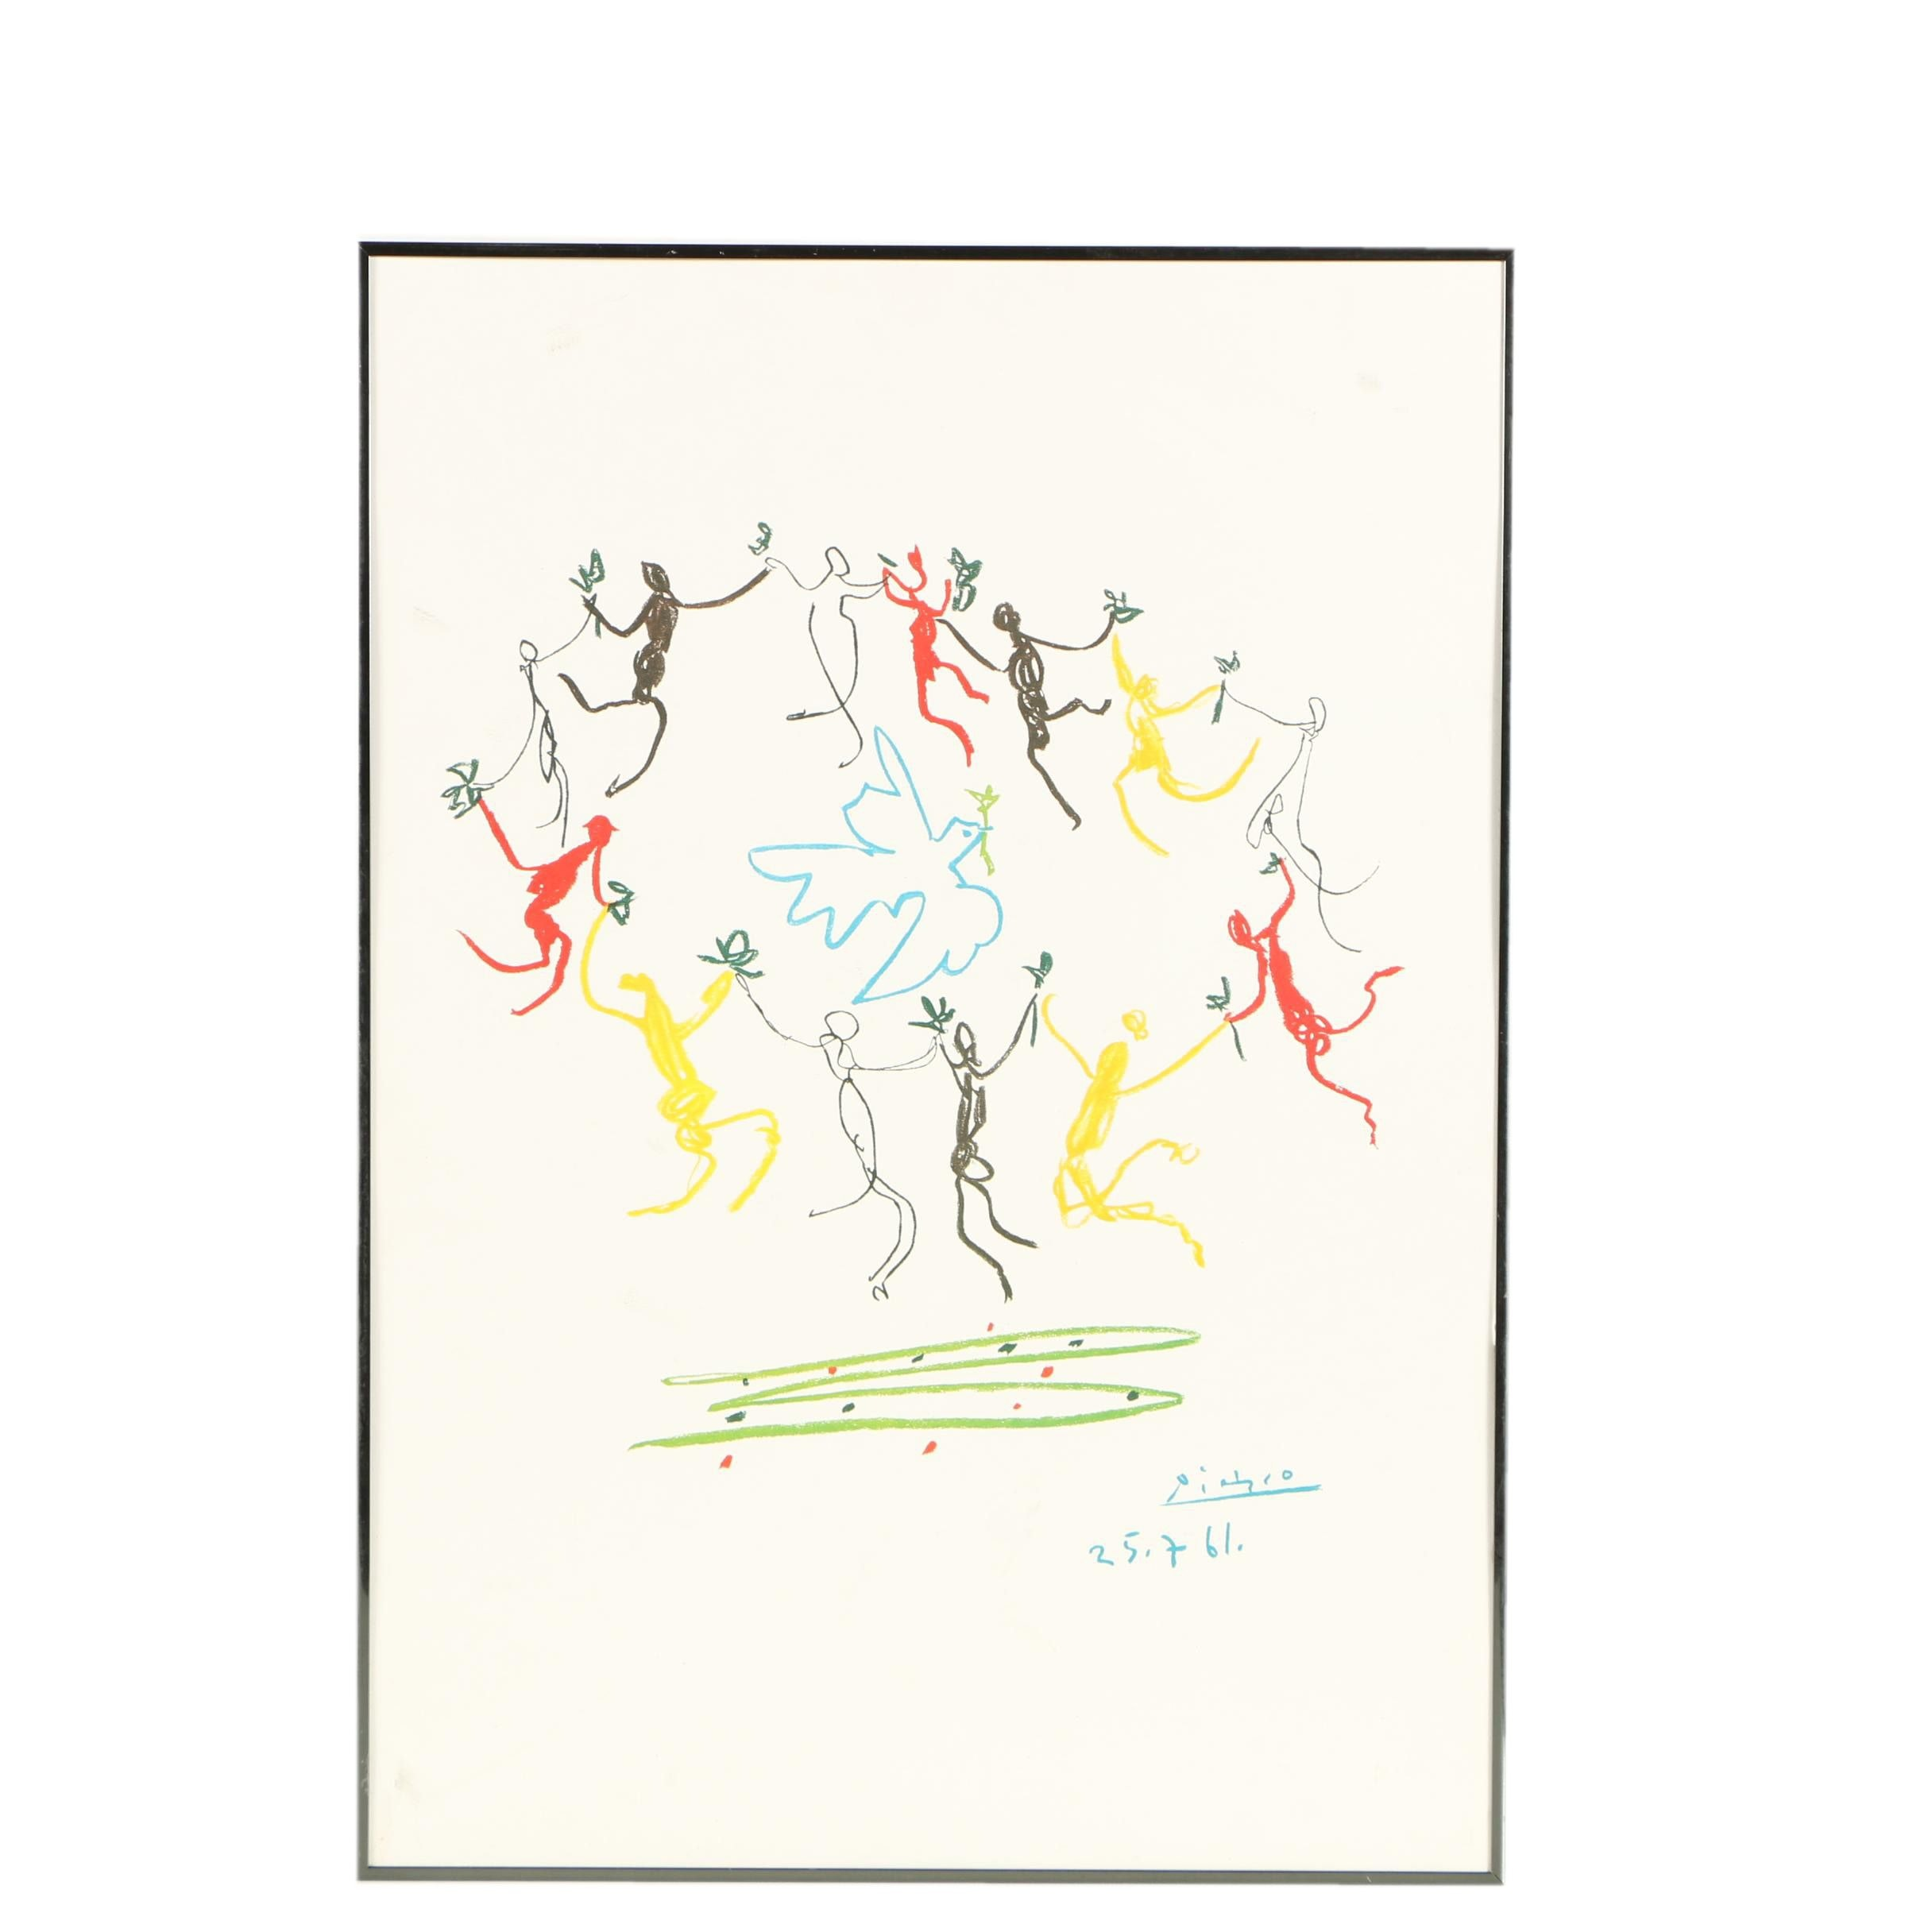 """Offset Lithograph Print on Paper Board After Pablo Picasso """"The Dance of Youth"""""""